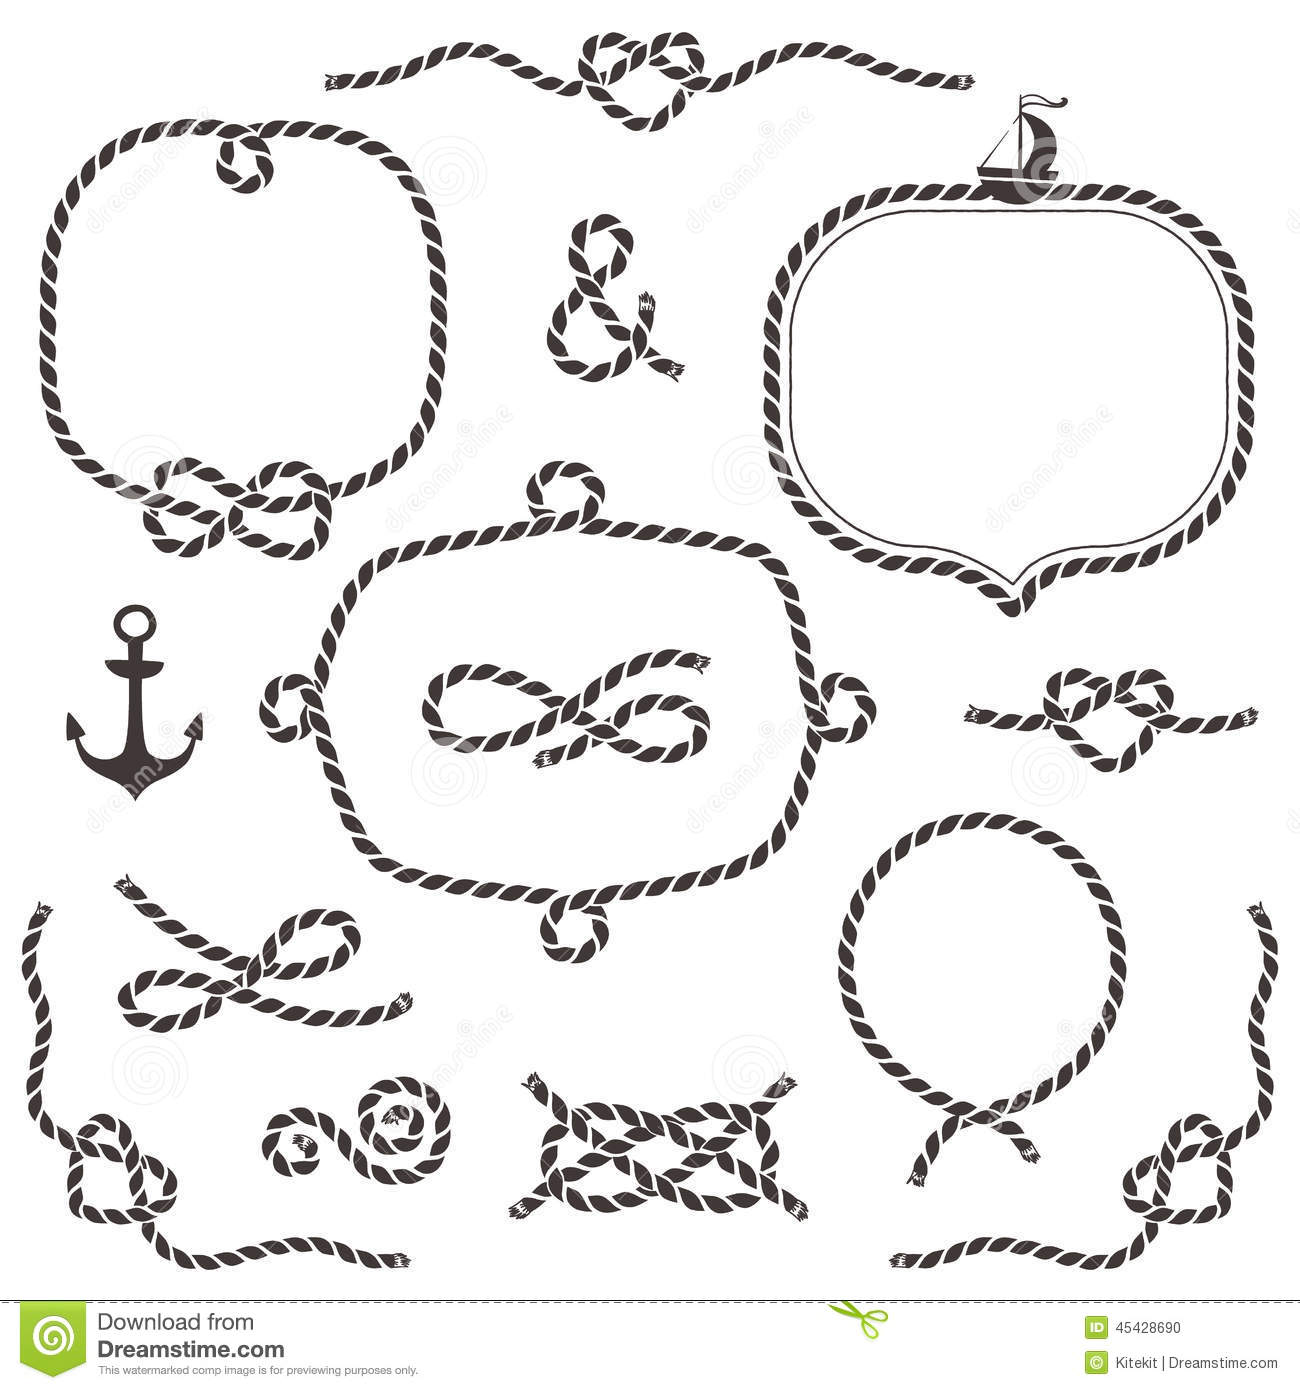 Rope Frames Borders Knots Hand Drawn Decorative